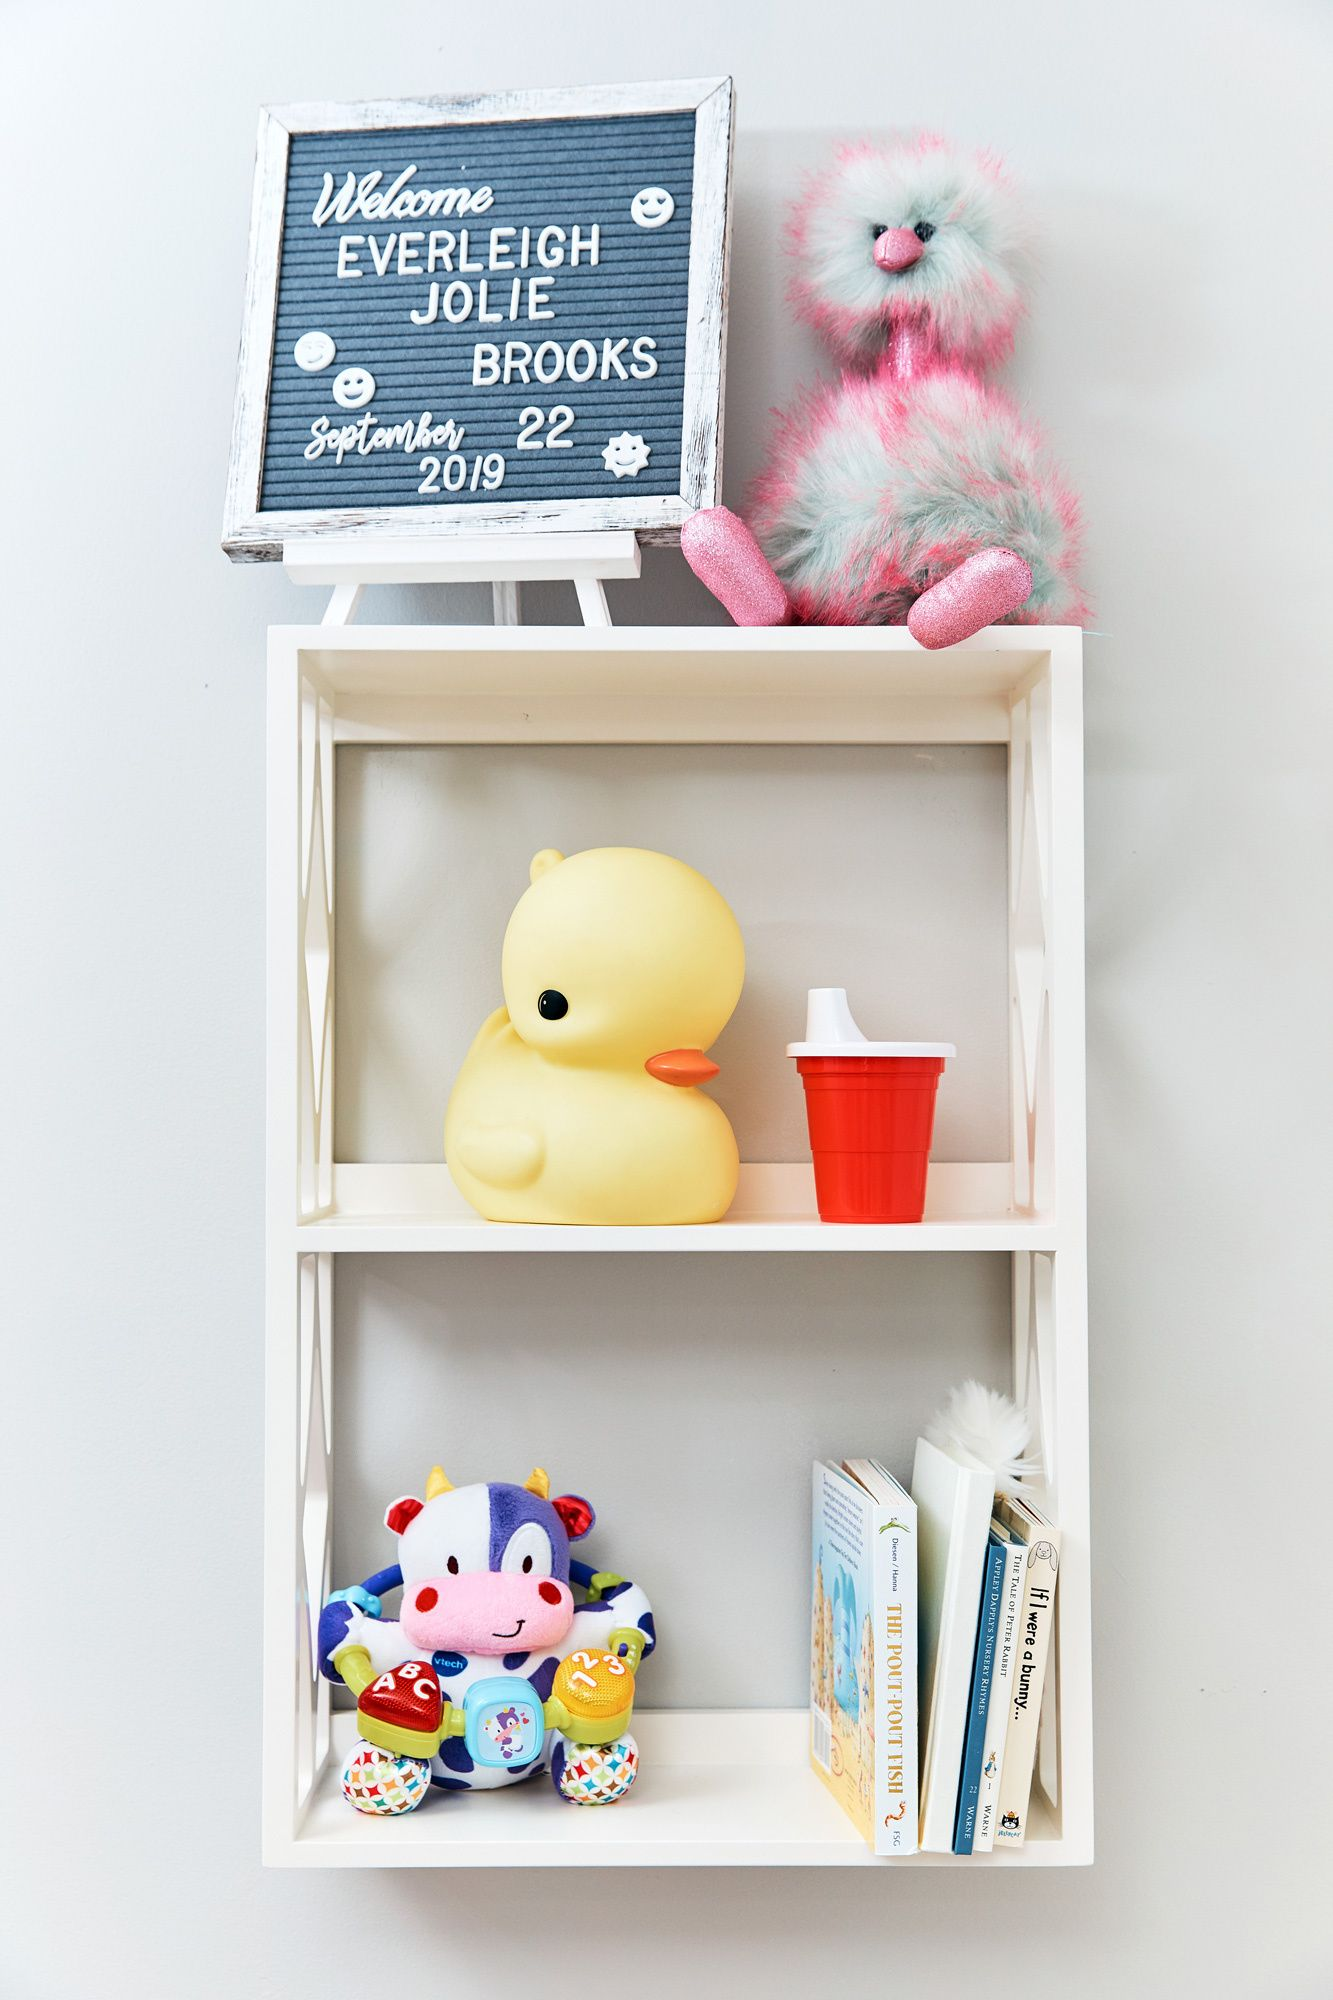 Toys and books decorating a new nursery